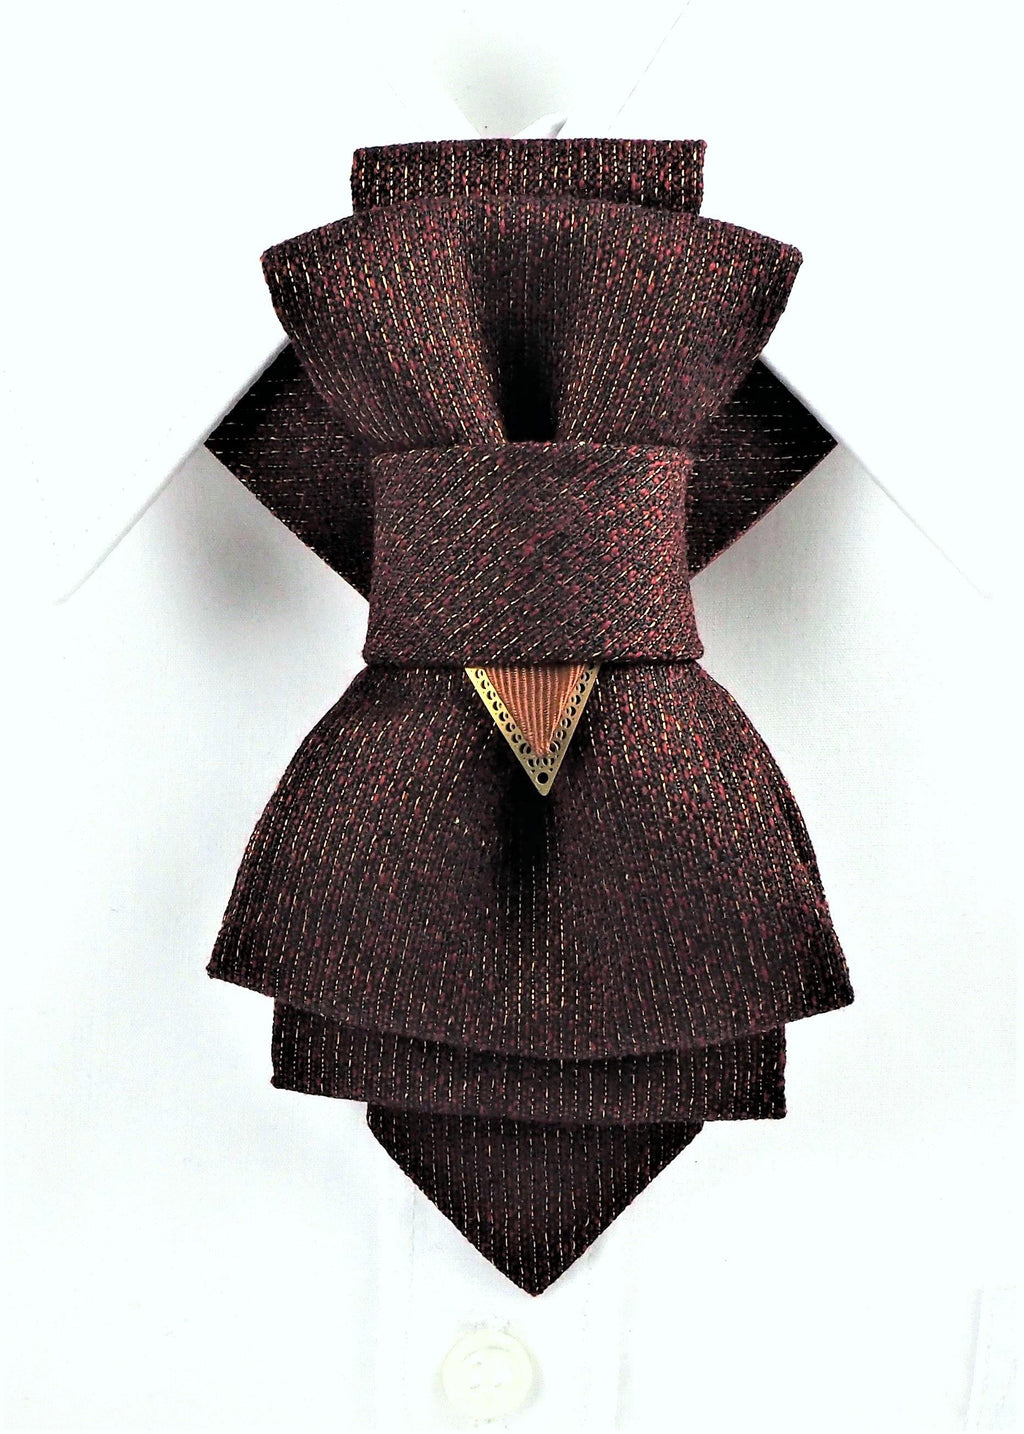 Bow Tie, Tie for wedding suite NOUGAT II hopper tie hand made high-quality Bow tie